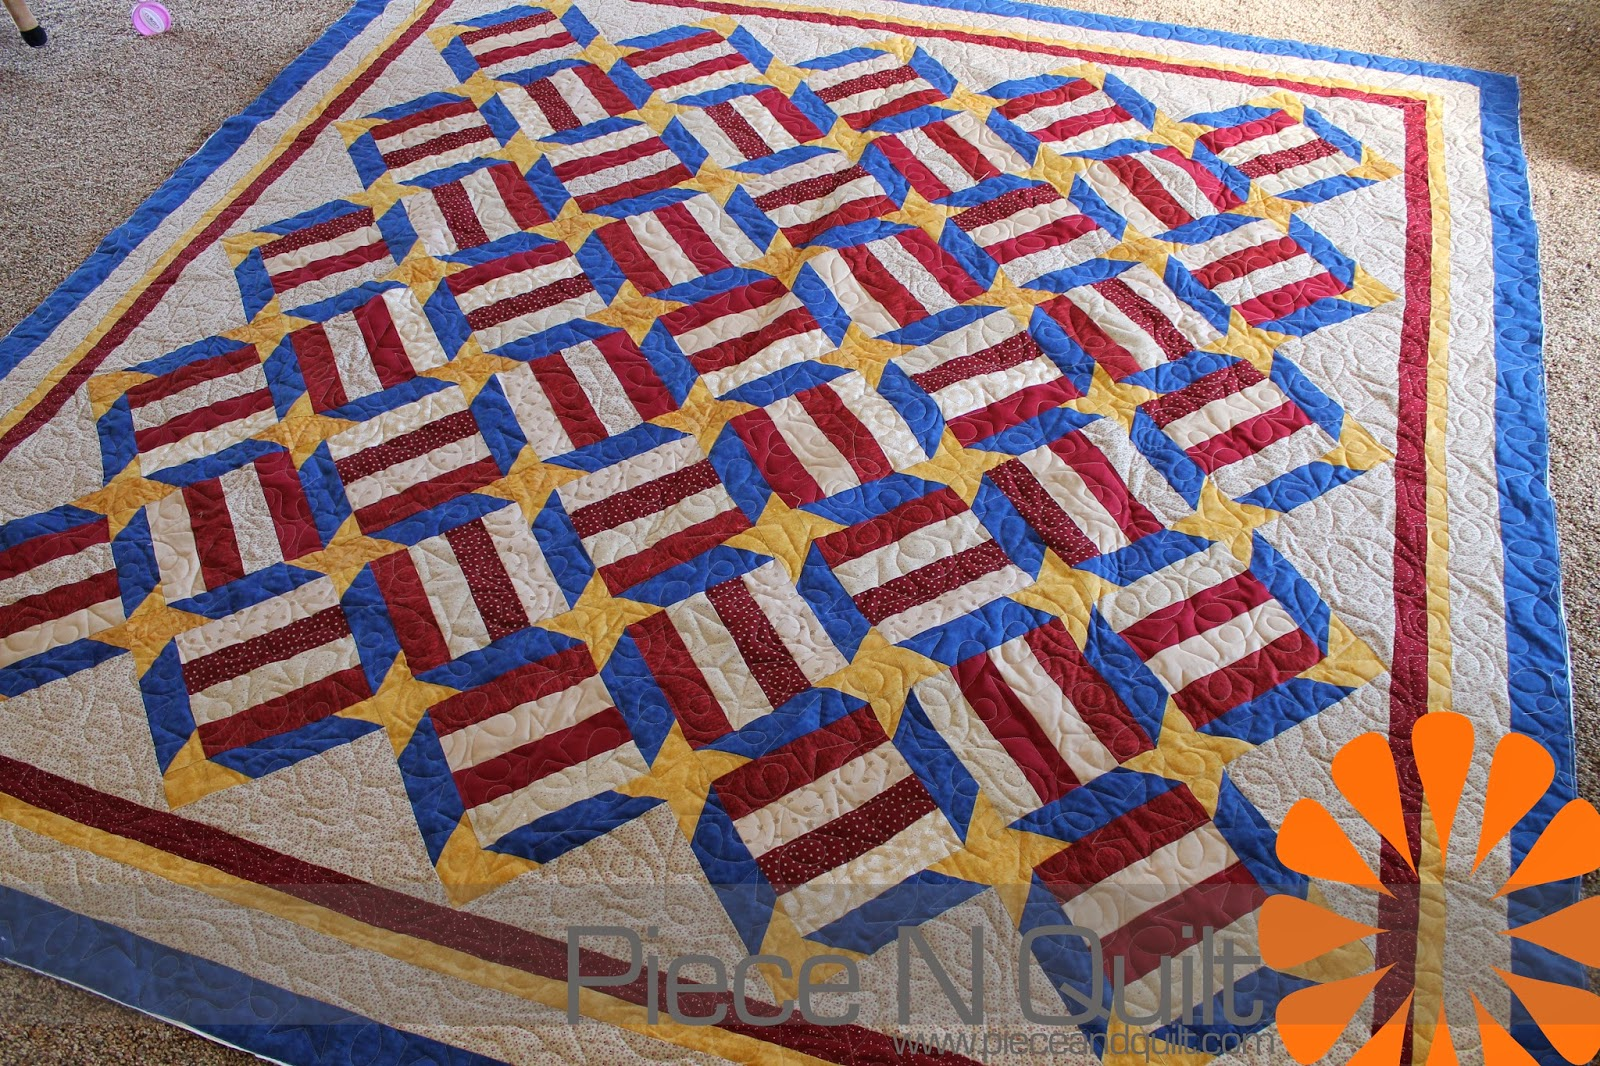 Quilt Patterns For College Students : Piece N Quilt: Patriotic Quilt